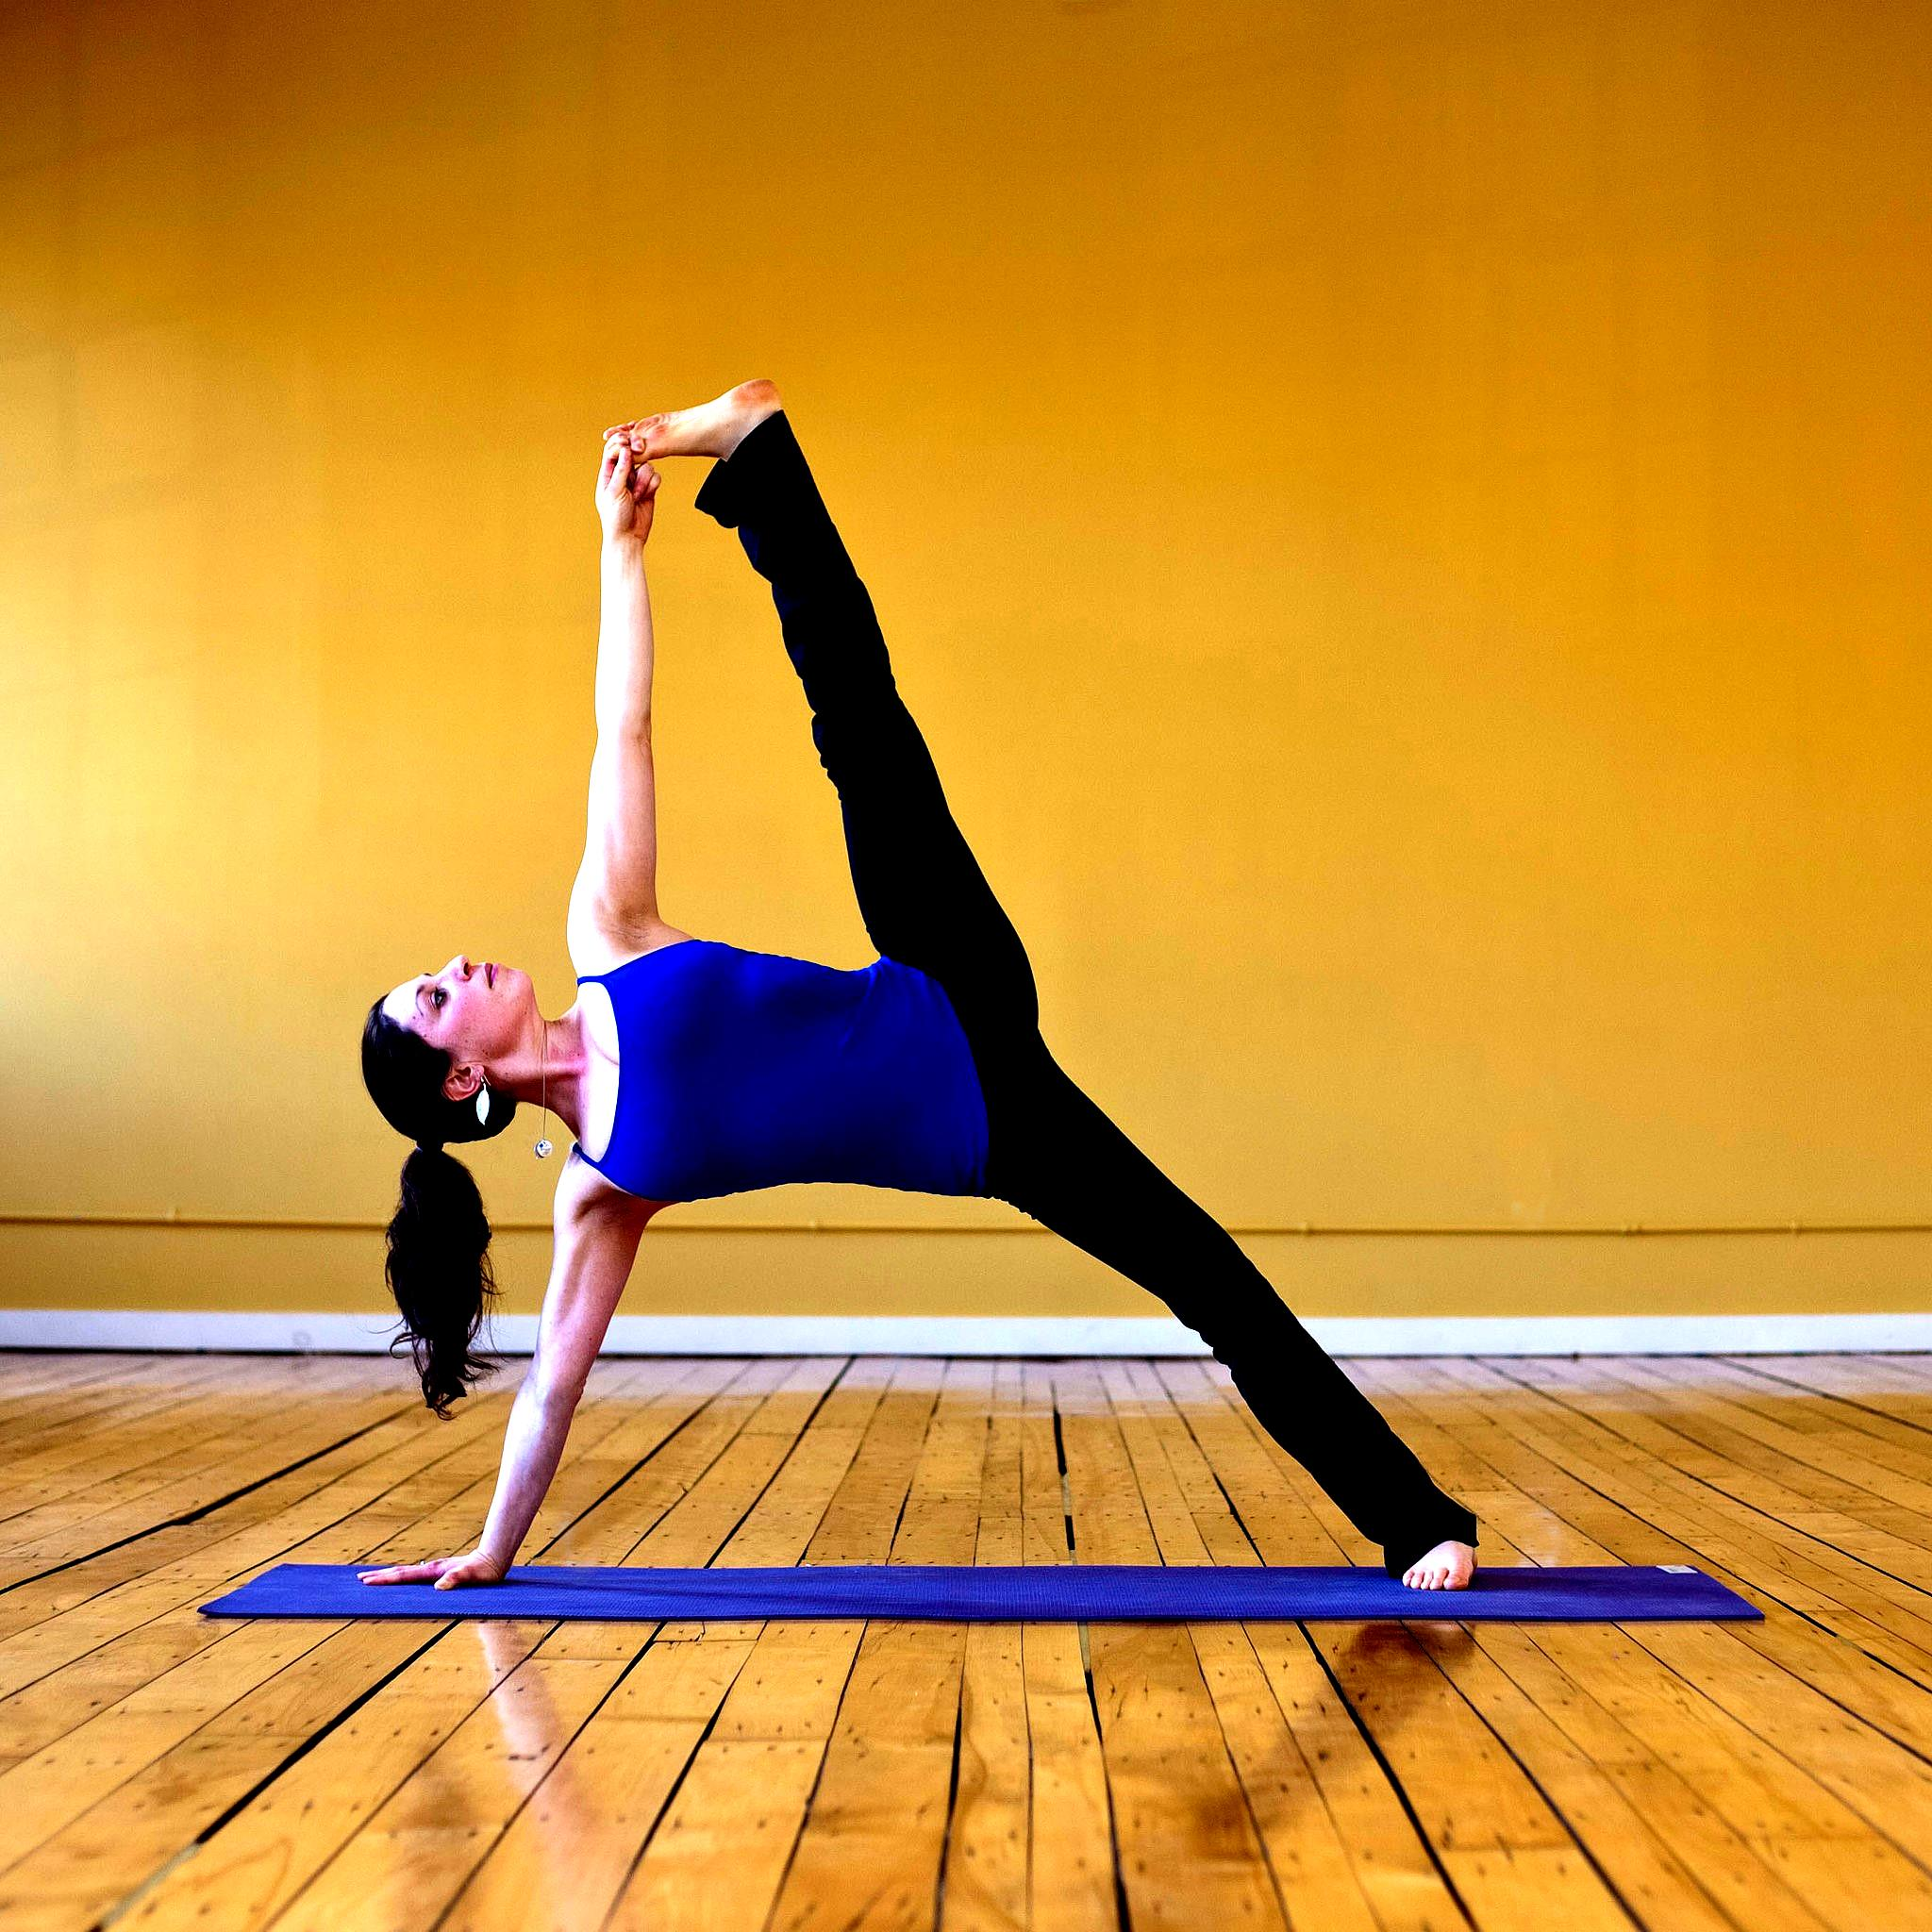 difficult yoga poses for beginners work out picture media. Black Bedroom Furniture Sets. Home Design Ideas